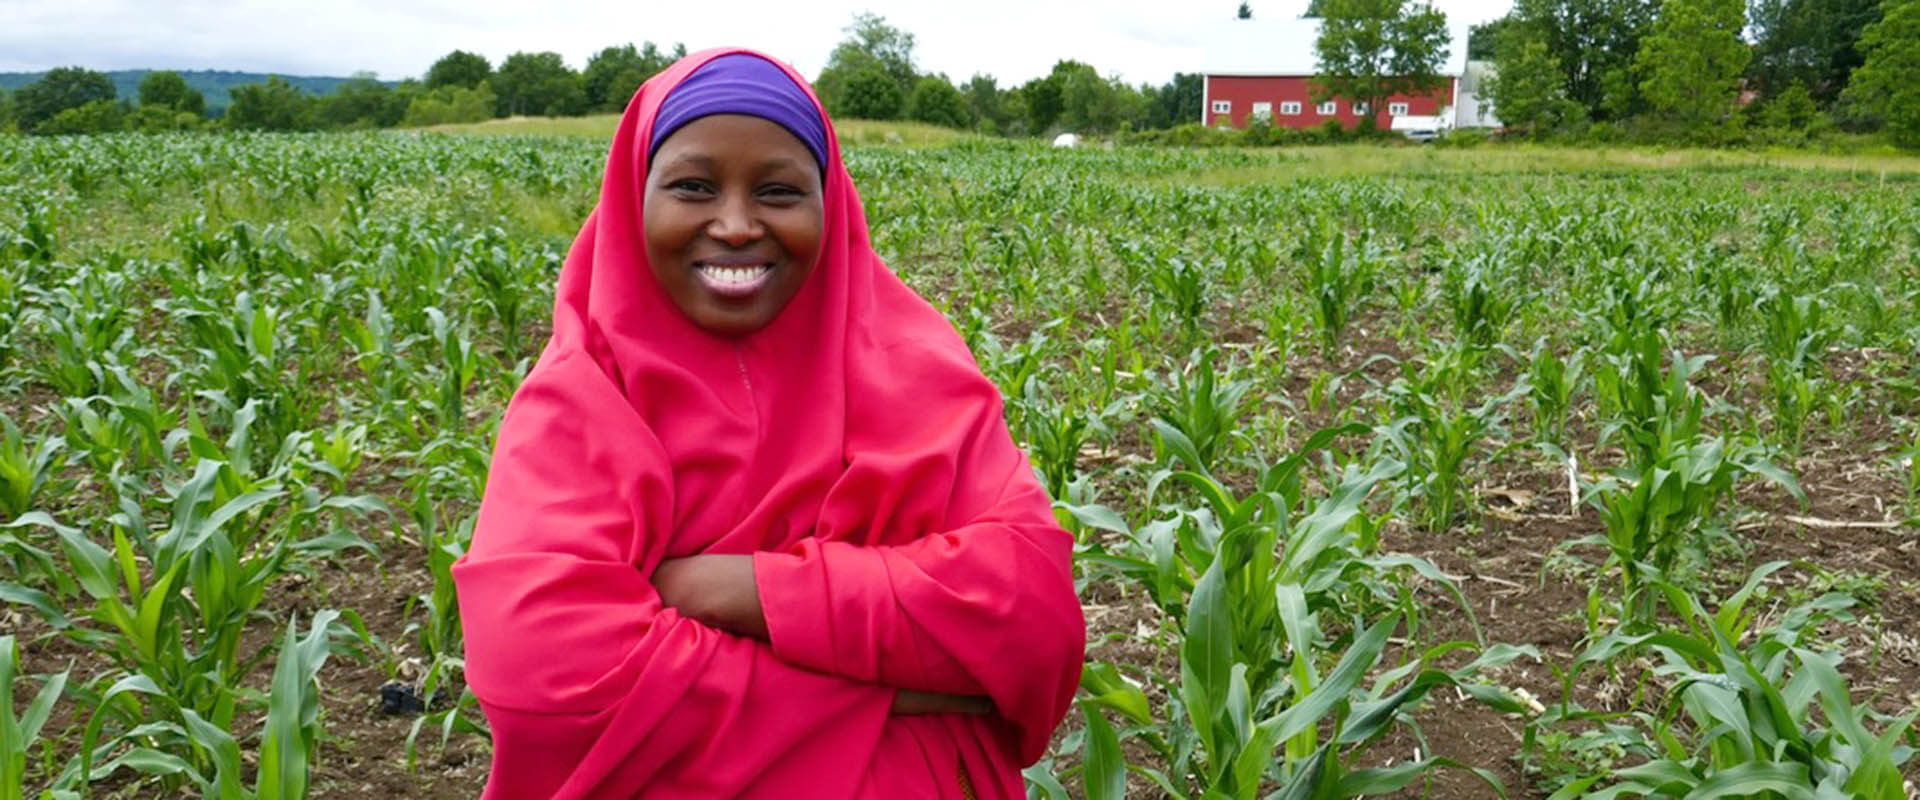 Somali Bantu woman in the field